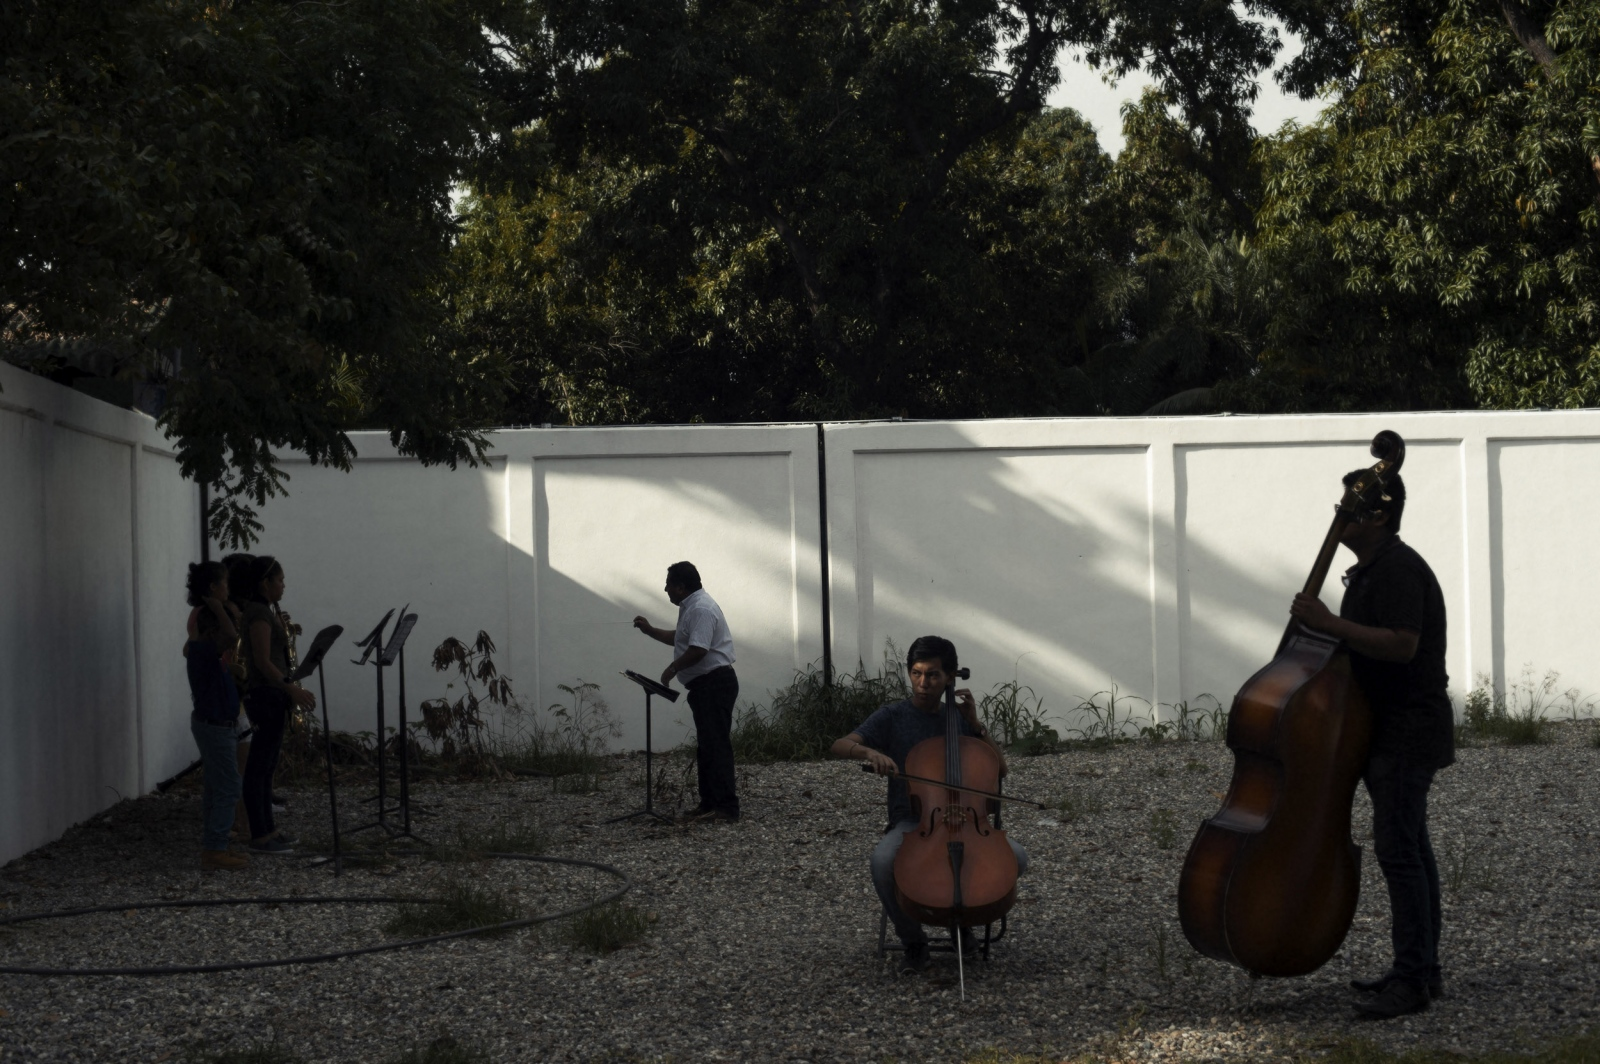 Students in barrio ciudad renaciemiento (Renaissance City neighborhood) practice music as part of an orchestra created to keep them away from the violence swirling around this Acapulco neighborhood, which is caught in the middle of the drug war. Latin America is by far the worlds most violent region, with Acapulco being the world's second most violent city.